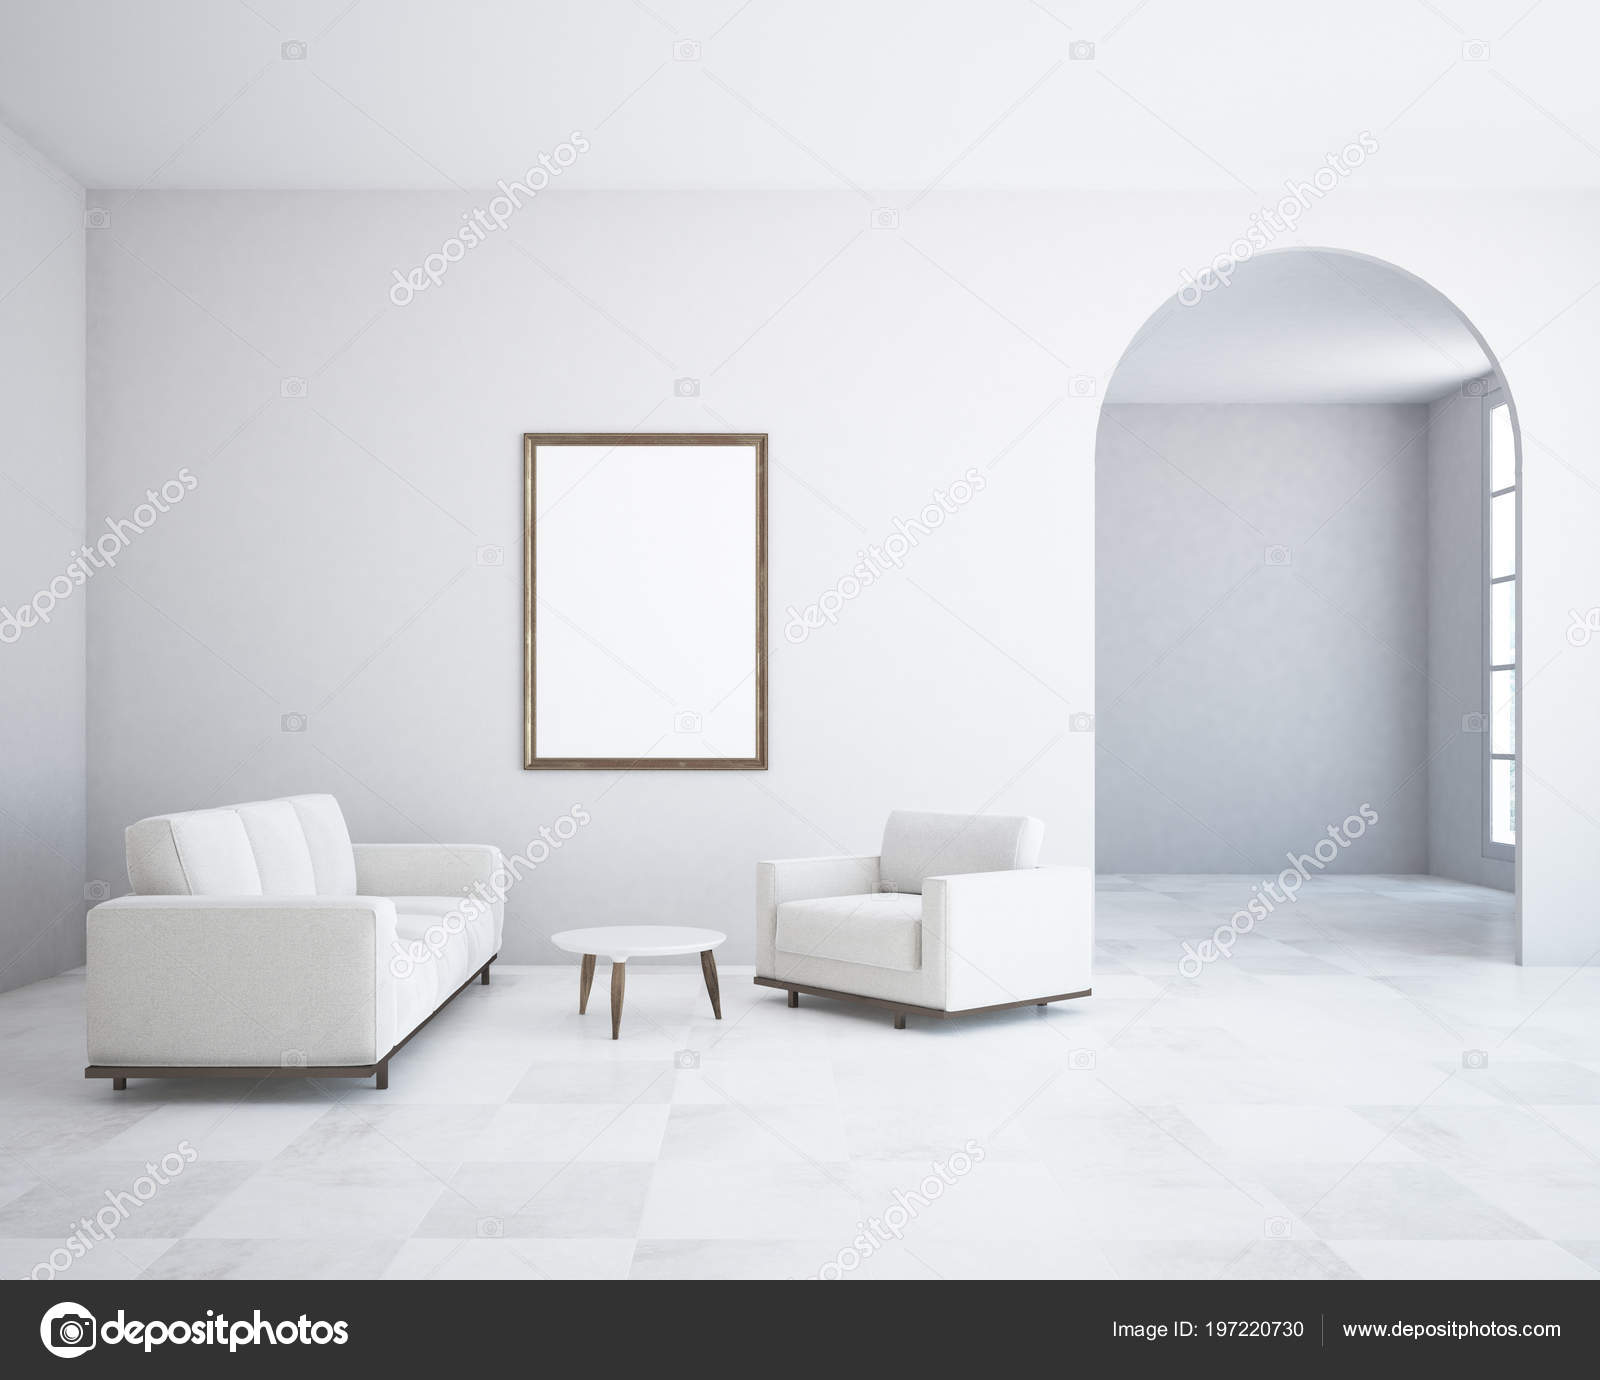 Incredible White Wall Minimalism Living Room Tiled Floor Long White Unemploymentrelief Wooden Chair Designs For Living Room Unemploymentrelieforg